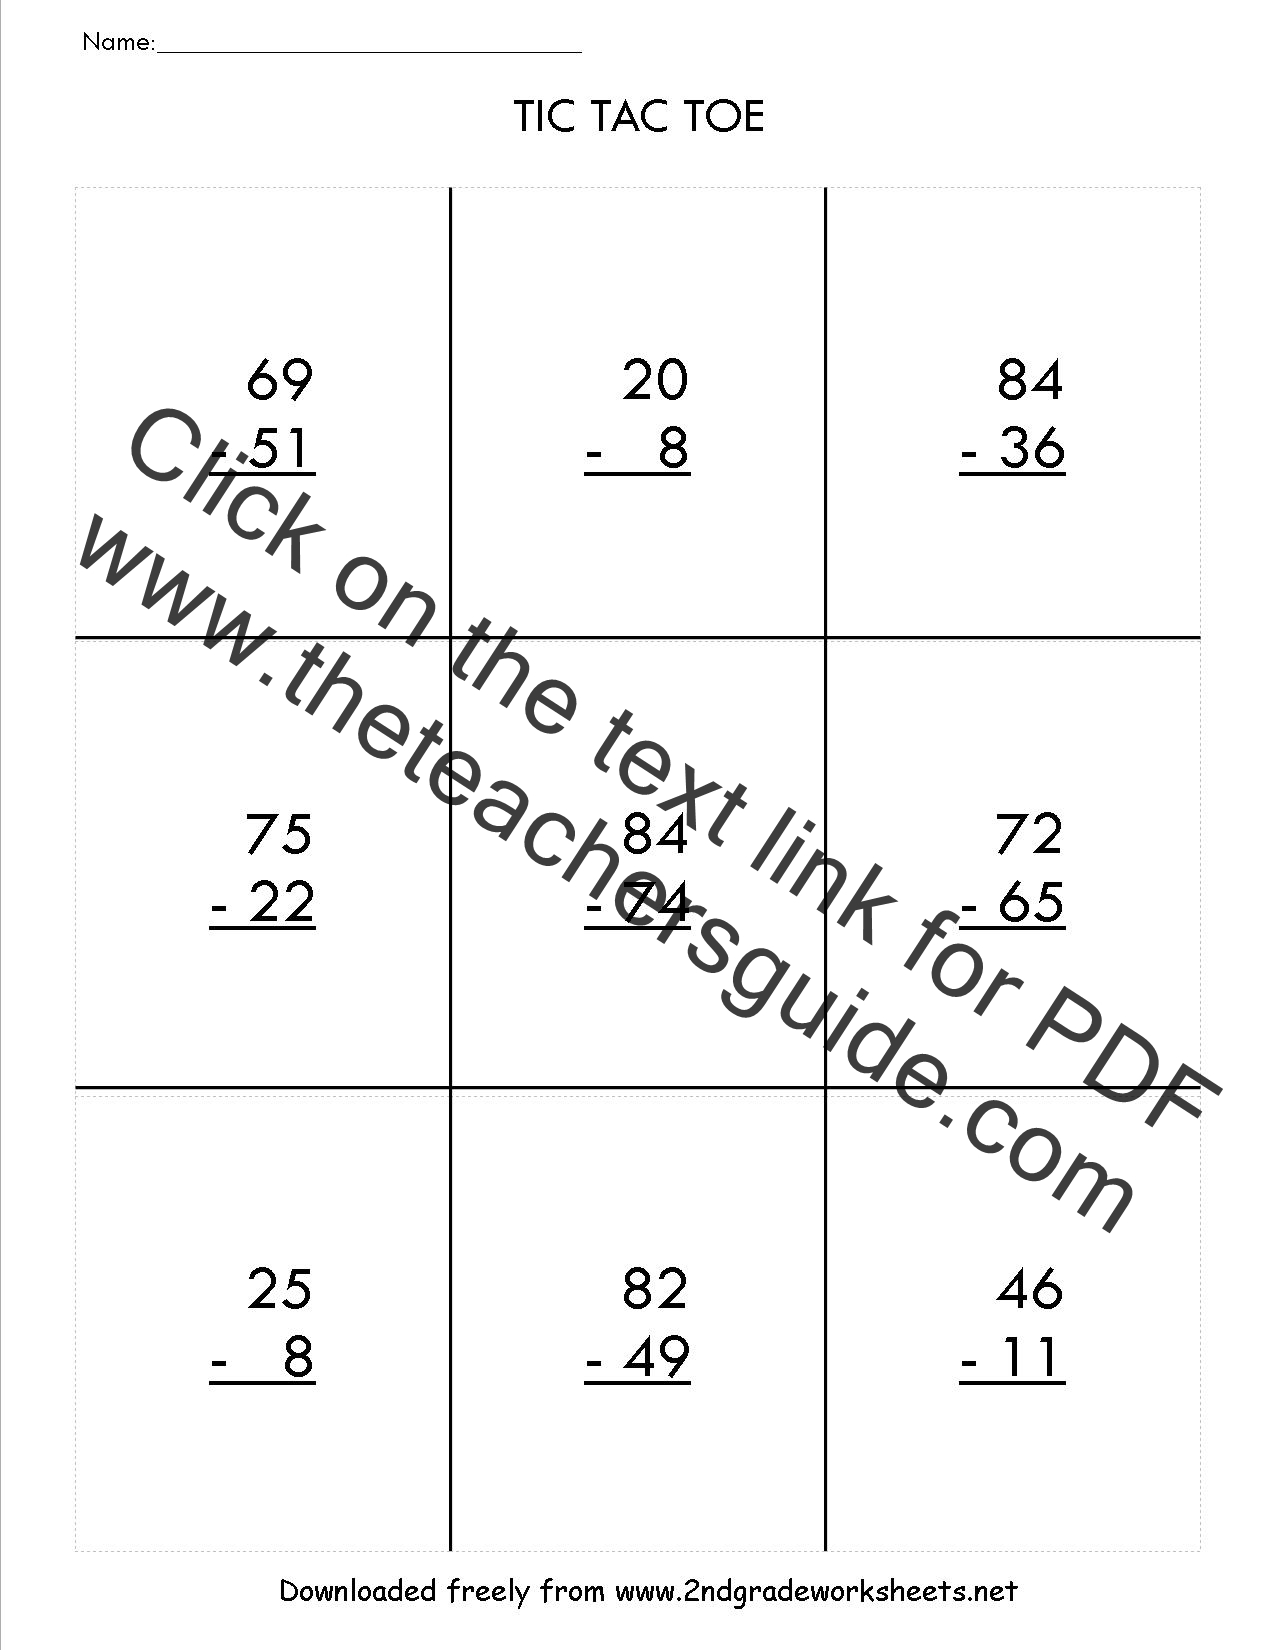 Two Digit Subtraction Worksheets – 2 Digit Subtraction with Regrouping Worksheets